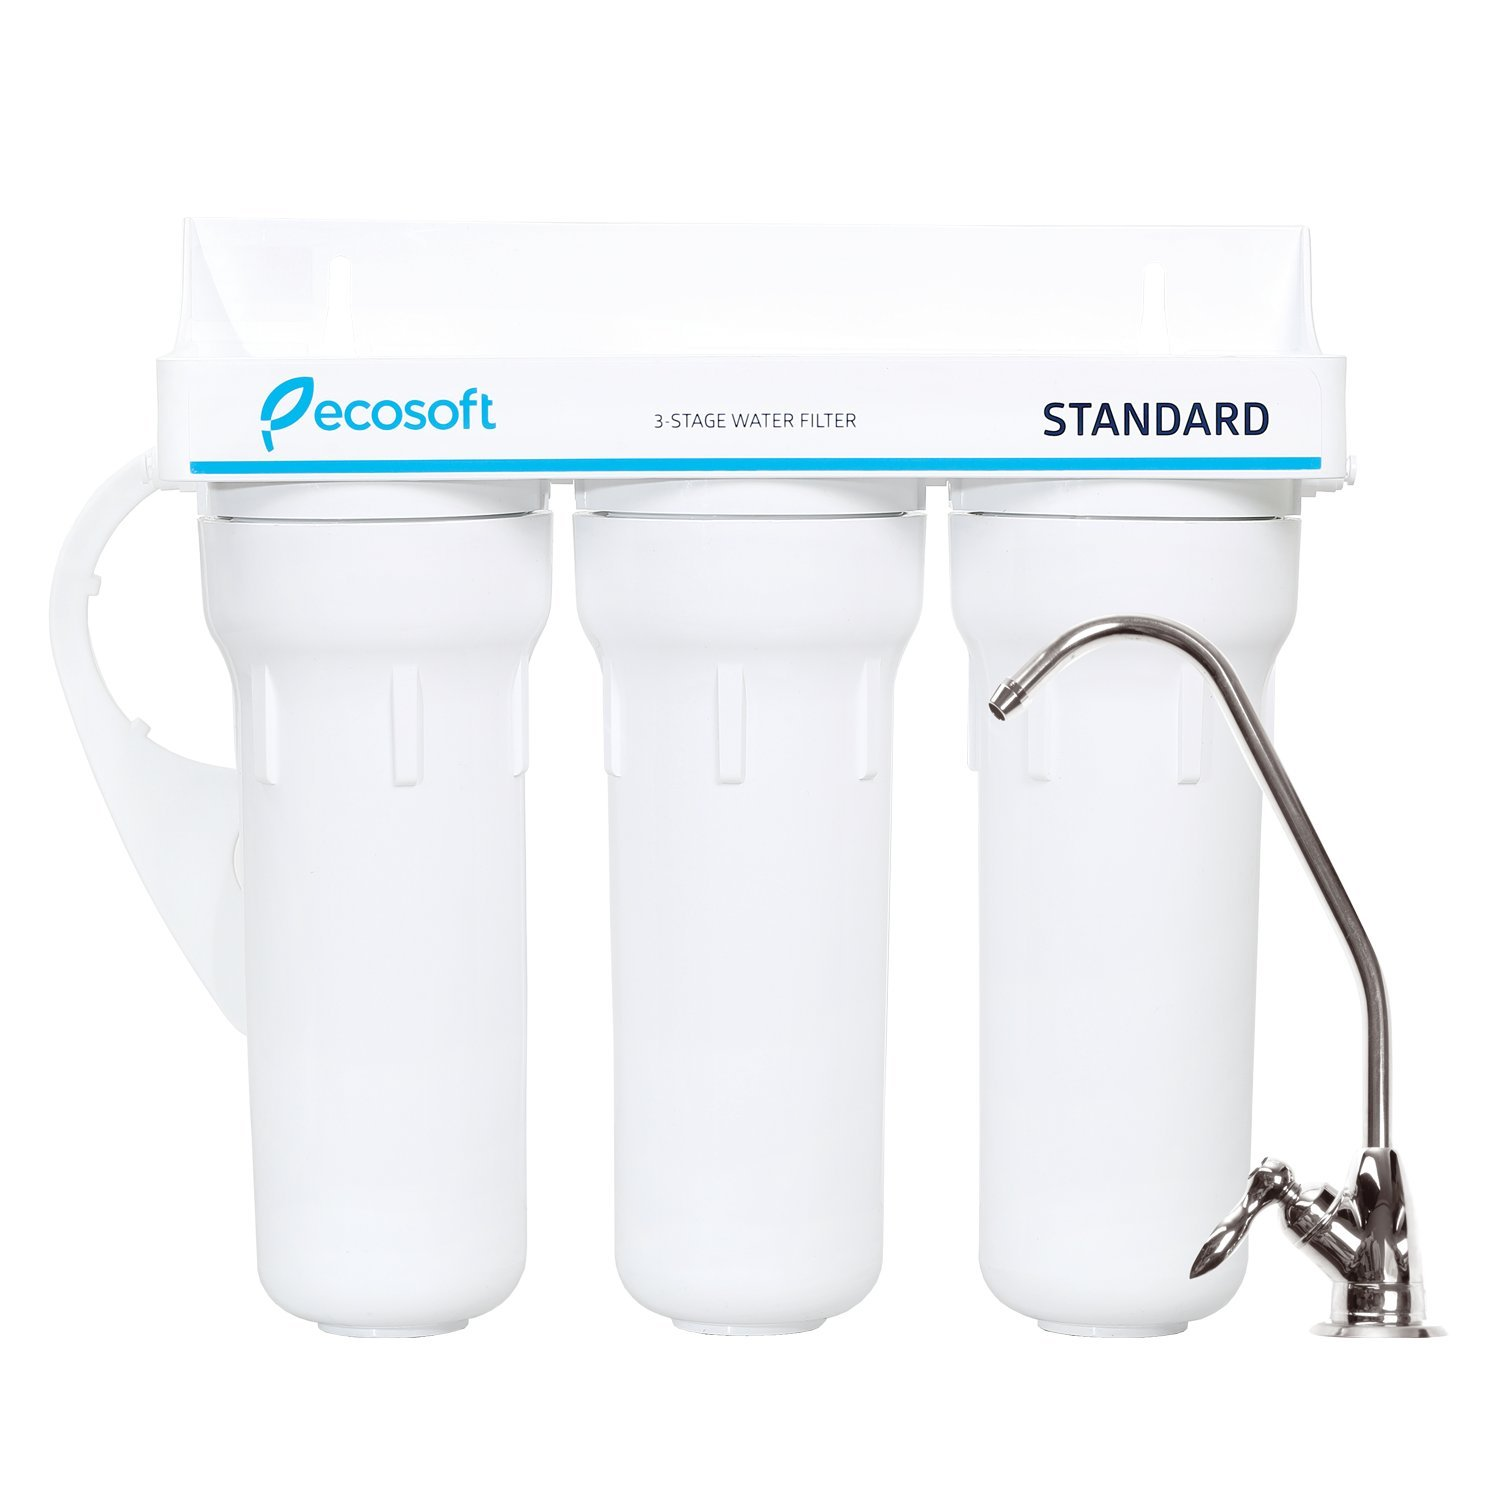 Ecosoft 3 Stage Under Sink Water Filtration System For Clean and Healthy Drinking Water (White)